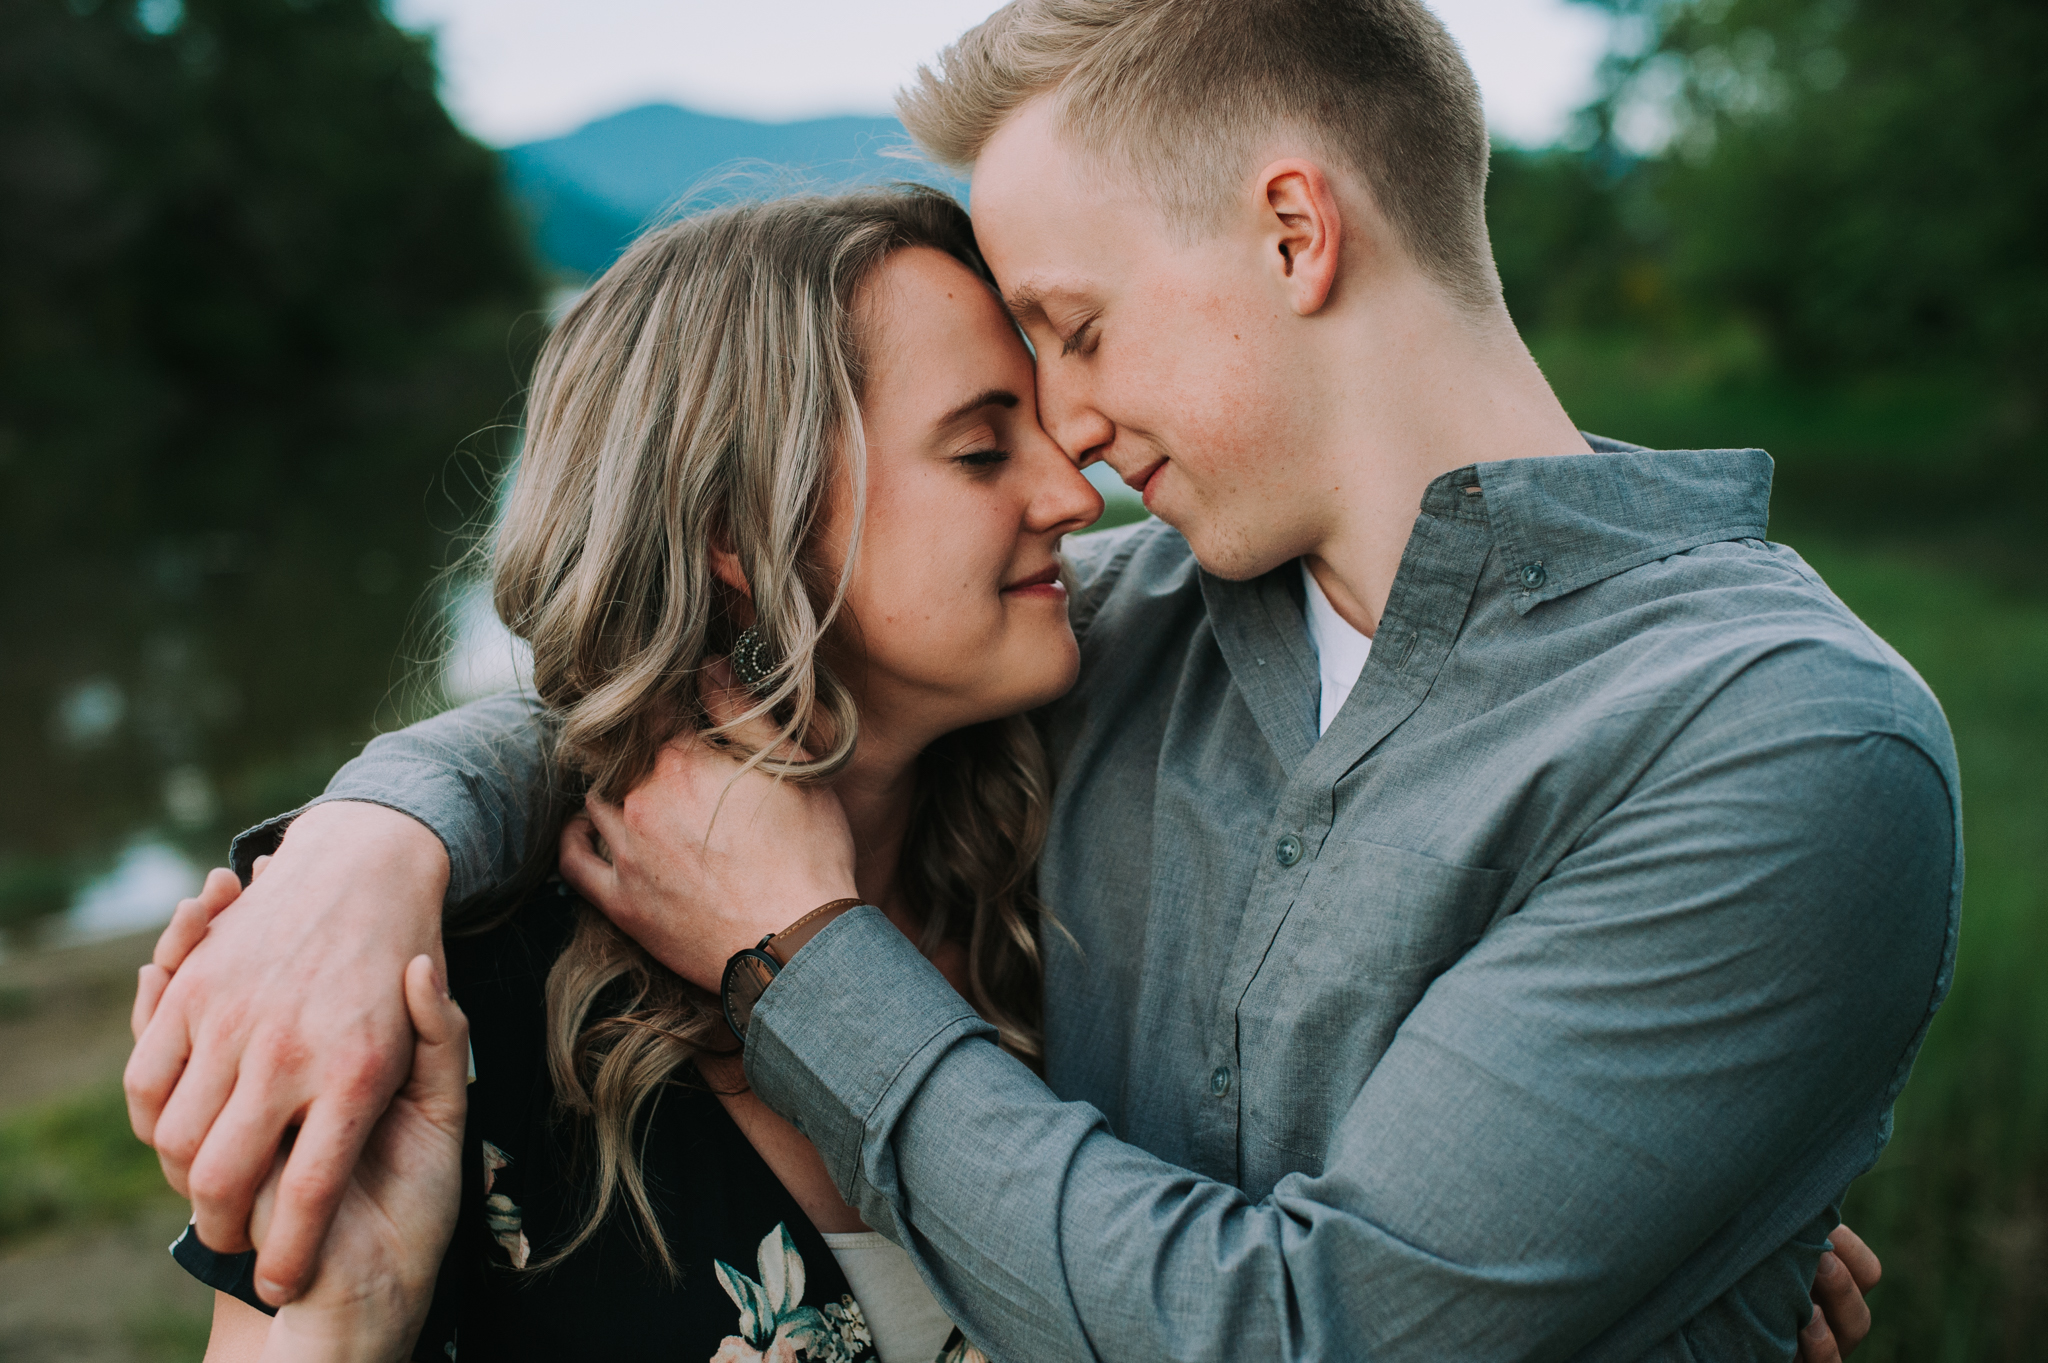 Leah+Rylan May2019_4.jpg